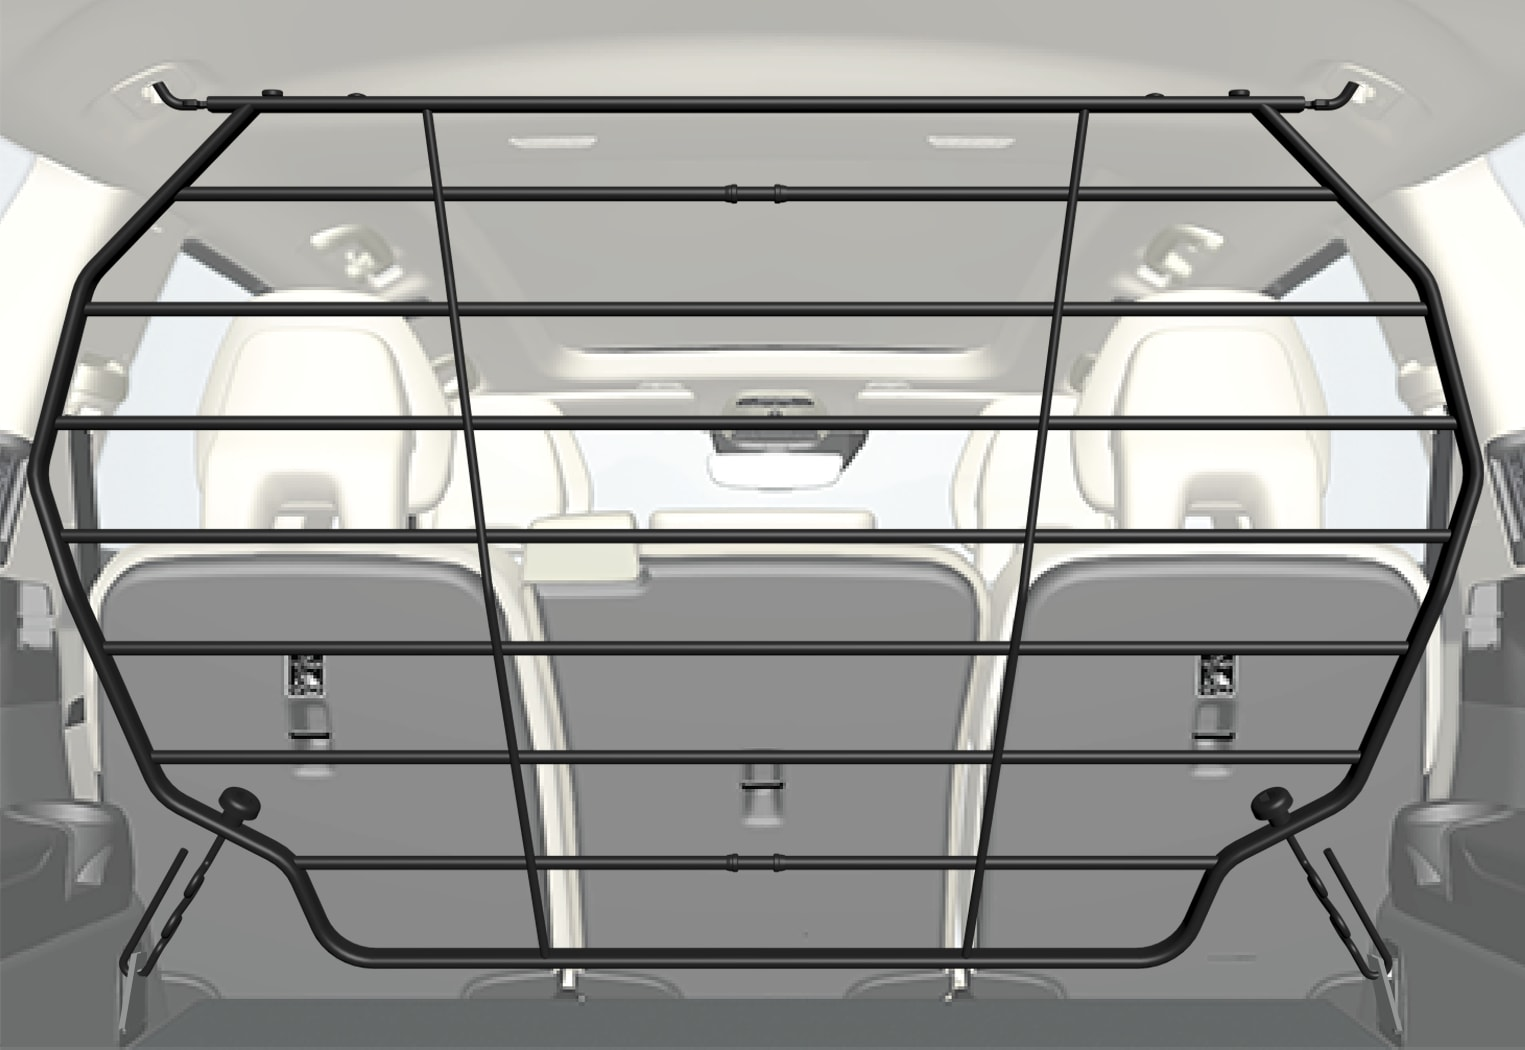 P5-1717-XC90-Safety grille overview